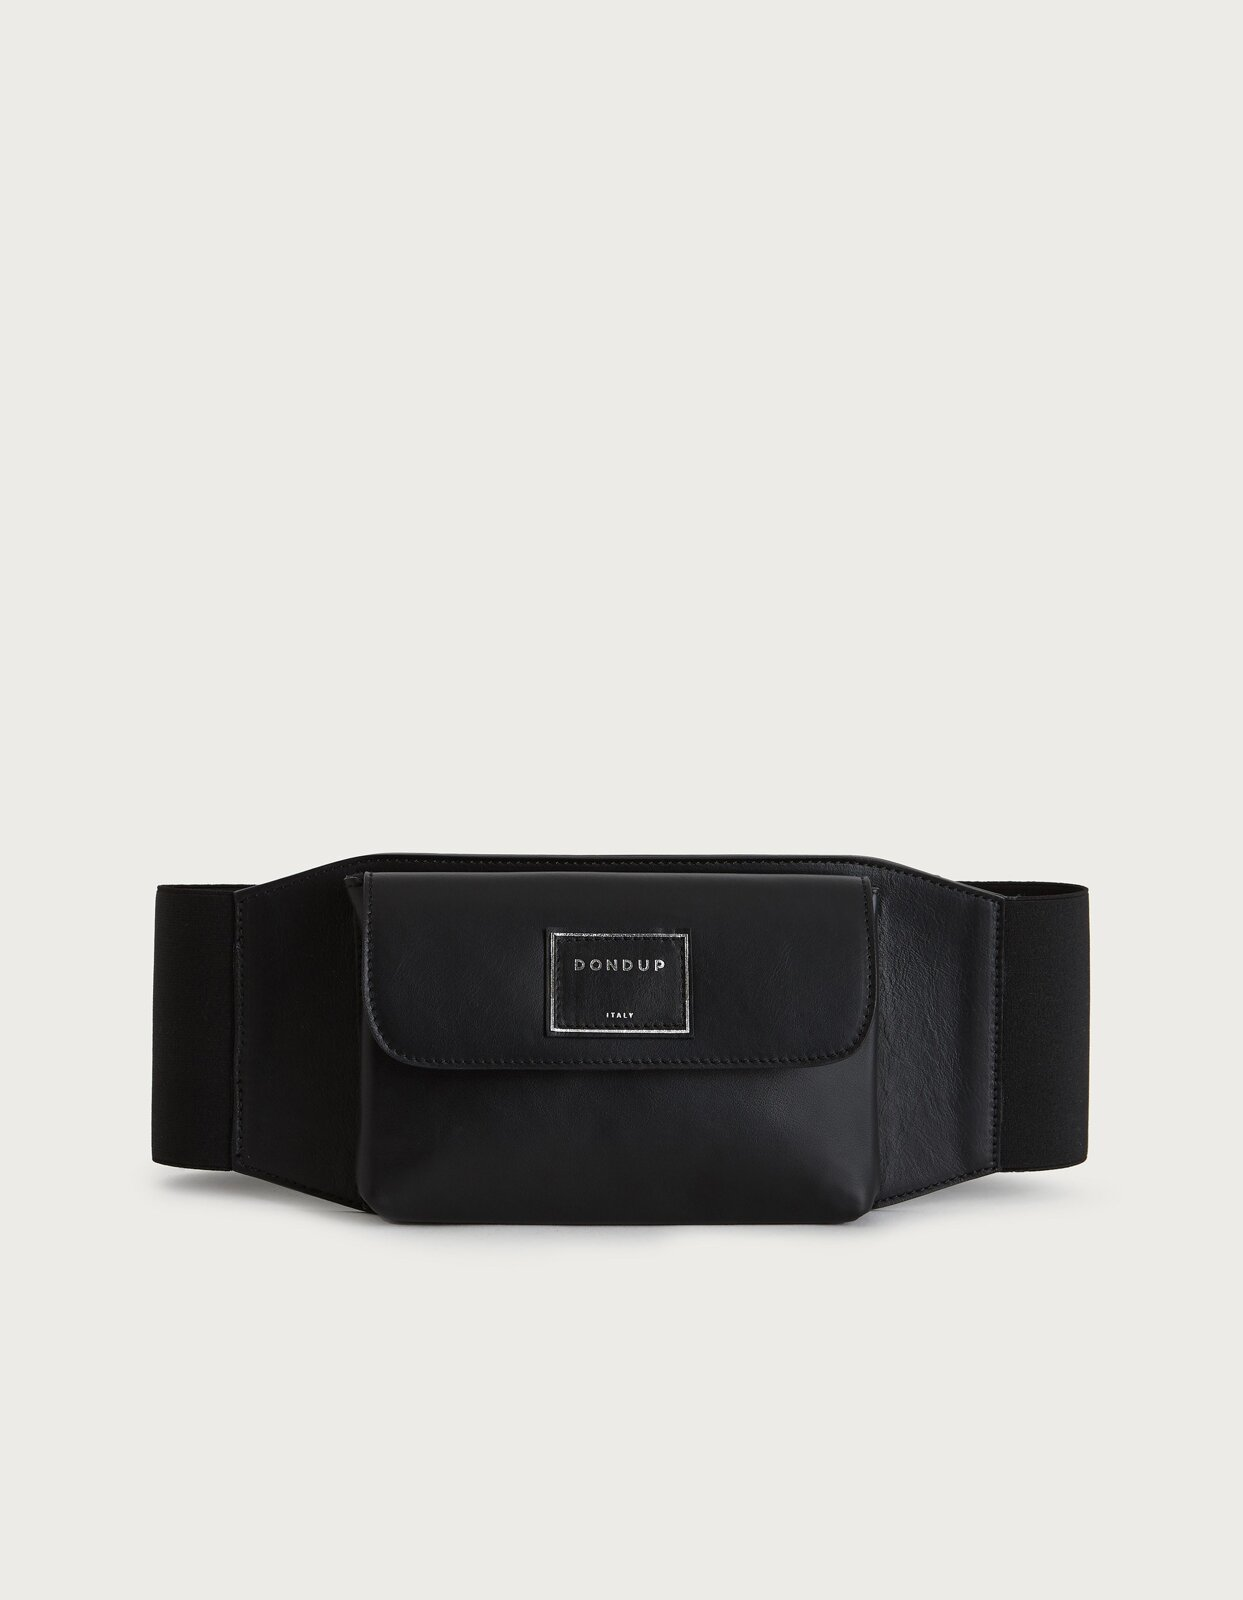 Pouch belt in nappa leather - Dondup